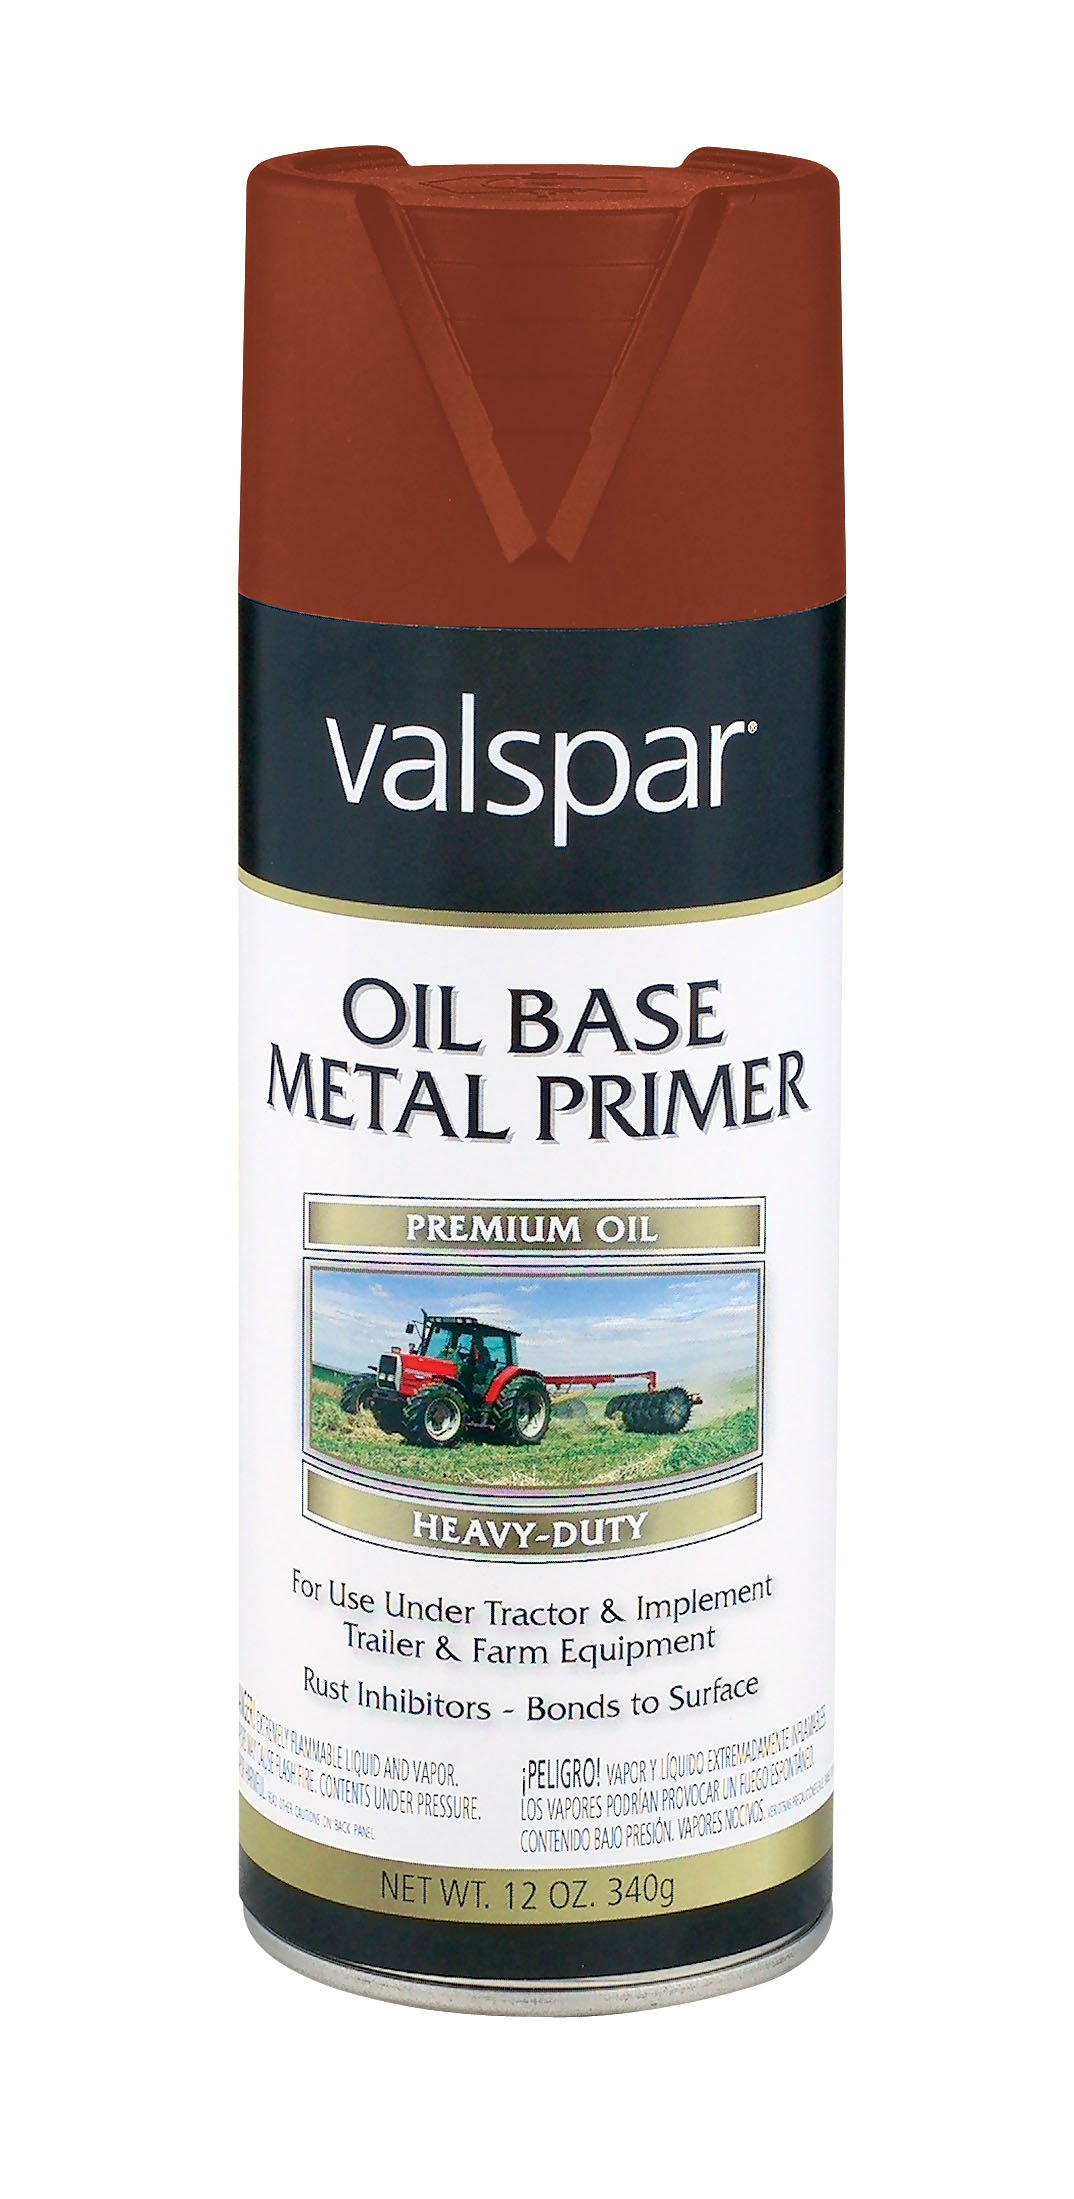 Valspar 5339-23 Red Oxide Metallic Tractor and Implement Spray Primer - 12 oz.